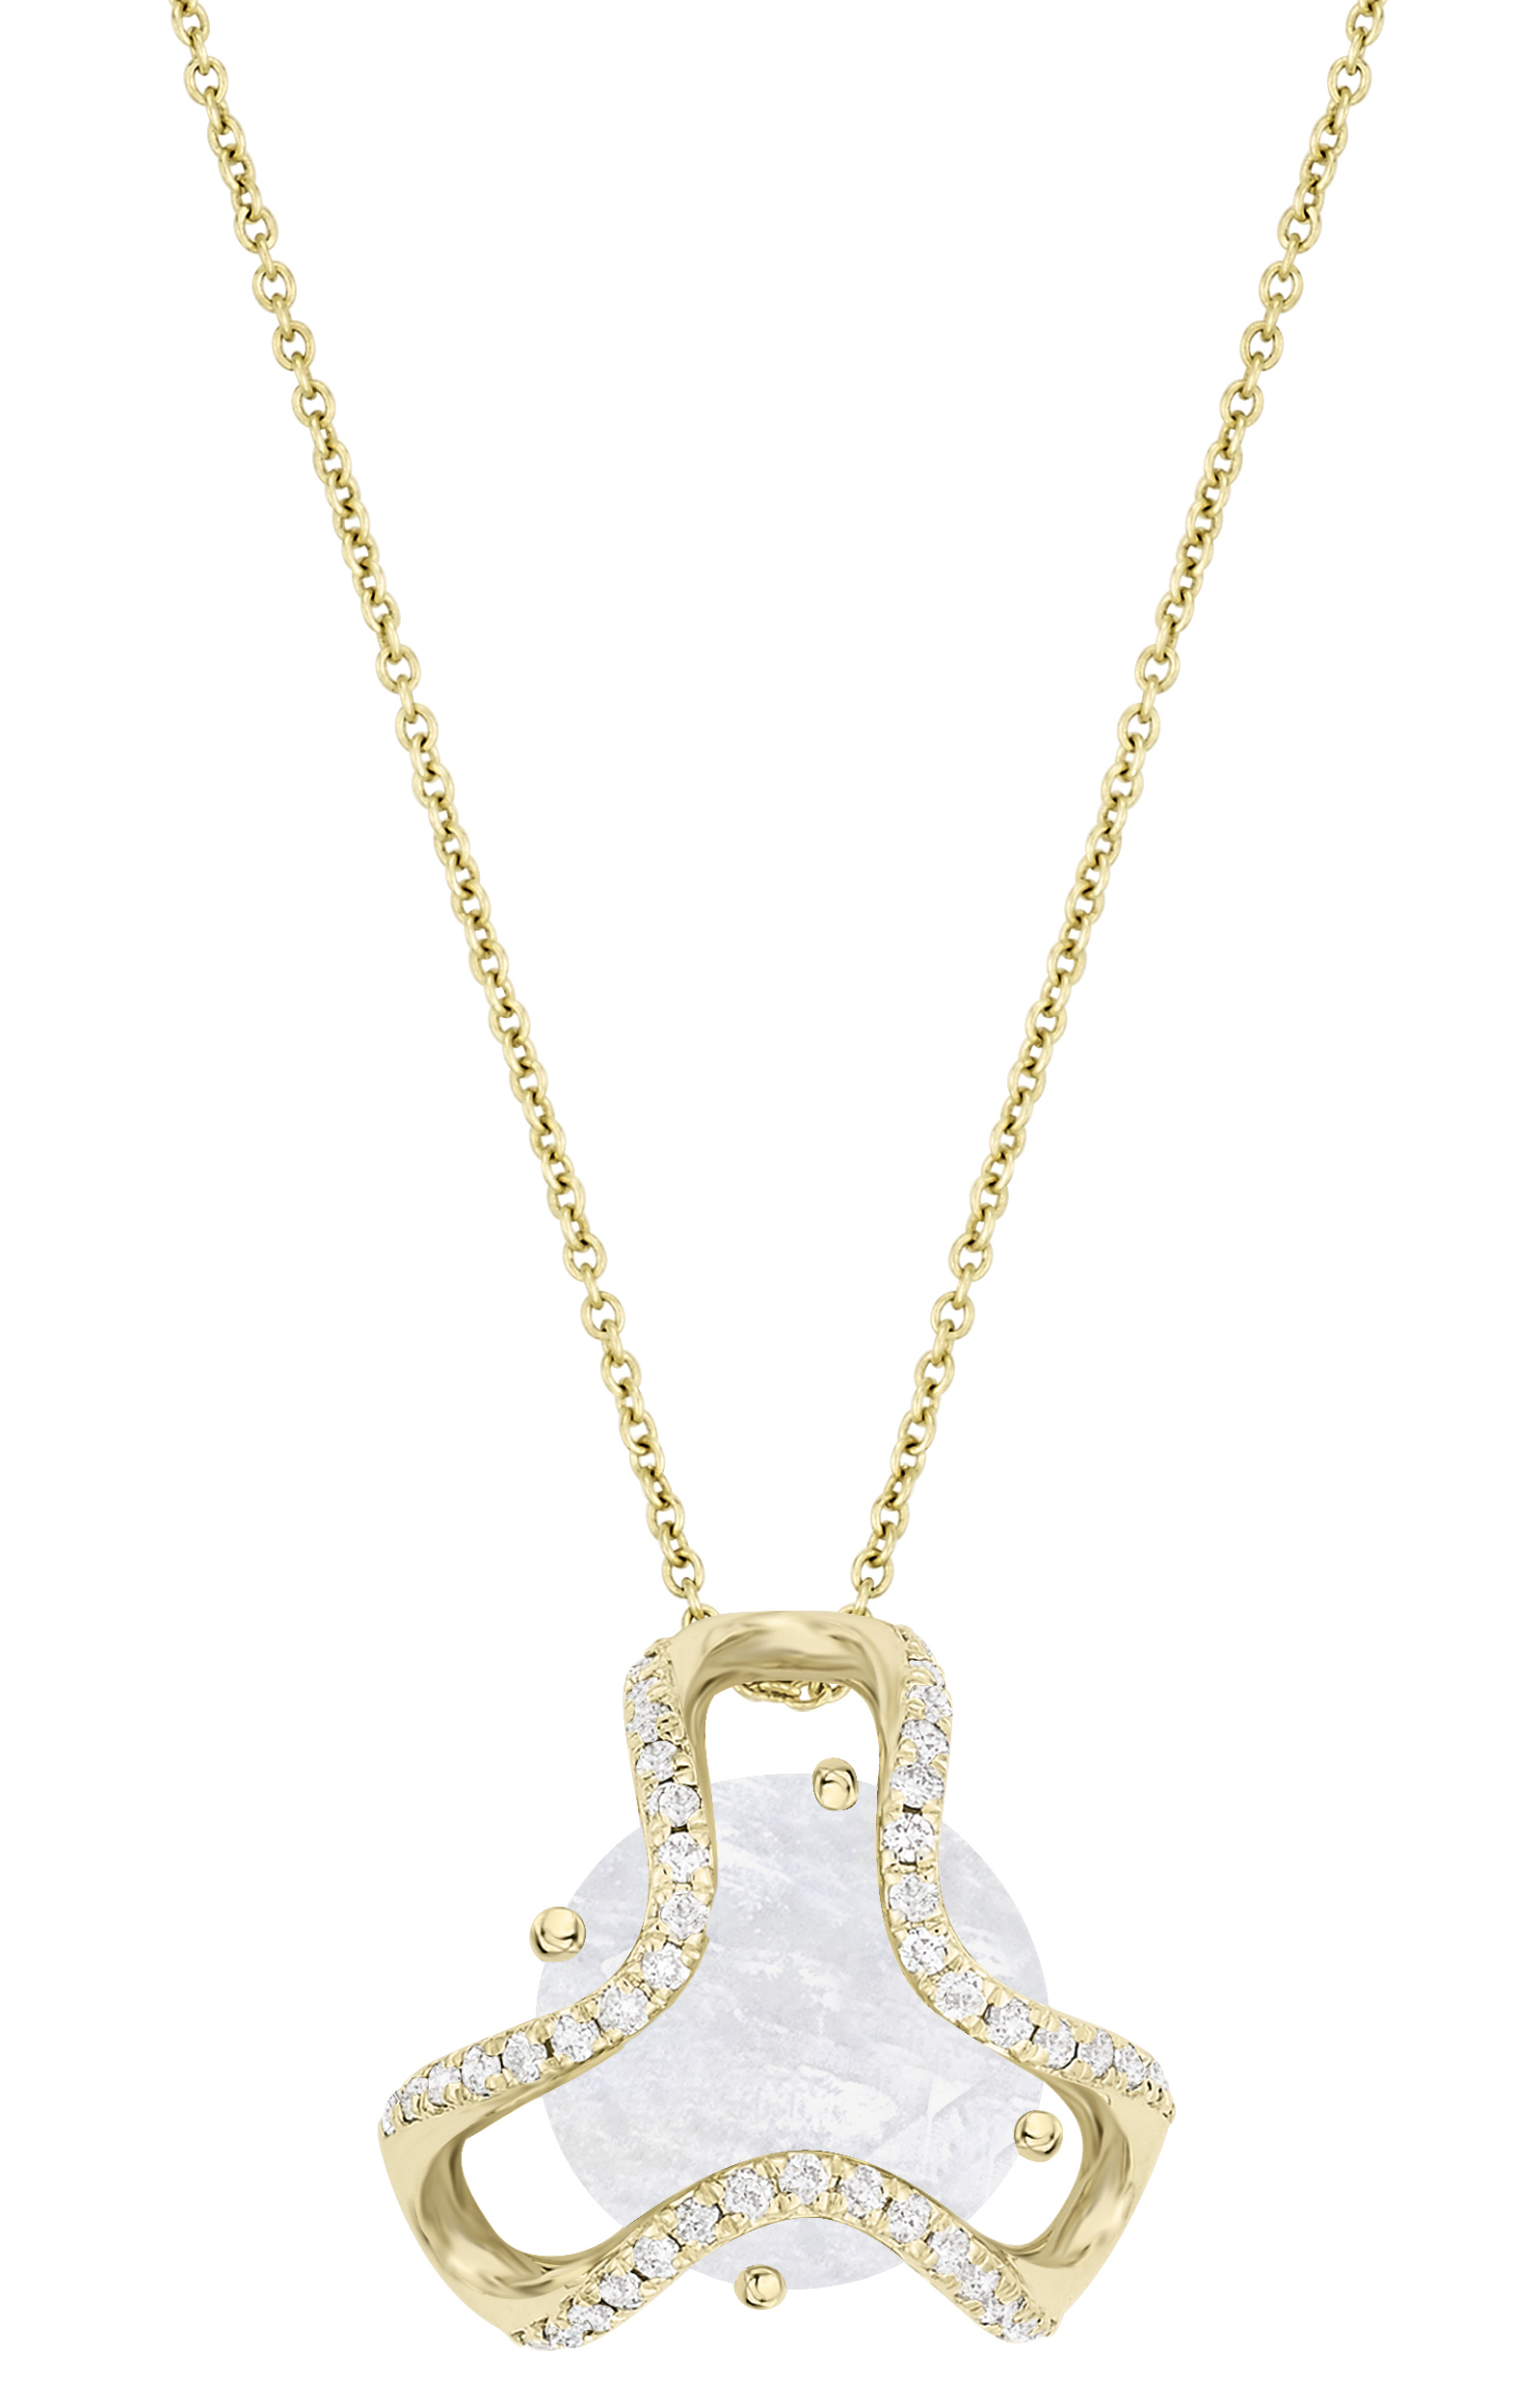 Arya Esha Galaxy collection pendant | JCK On Your Market